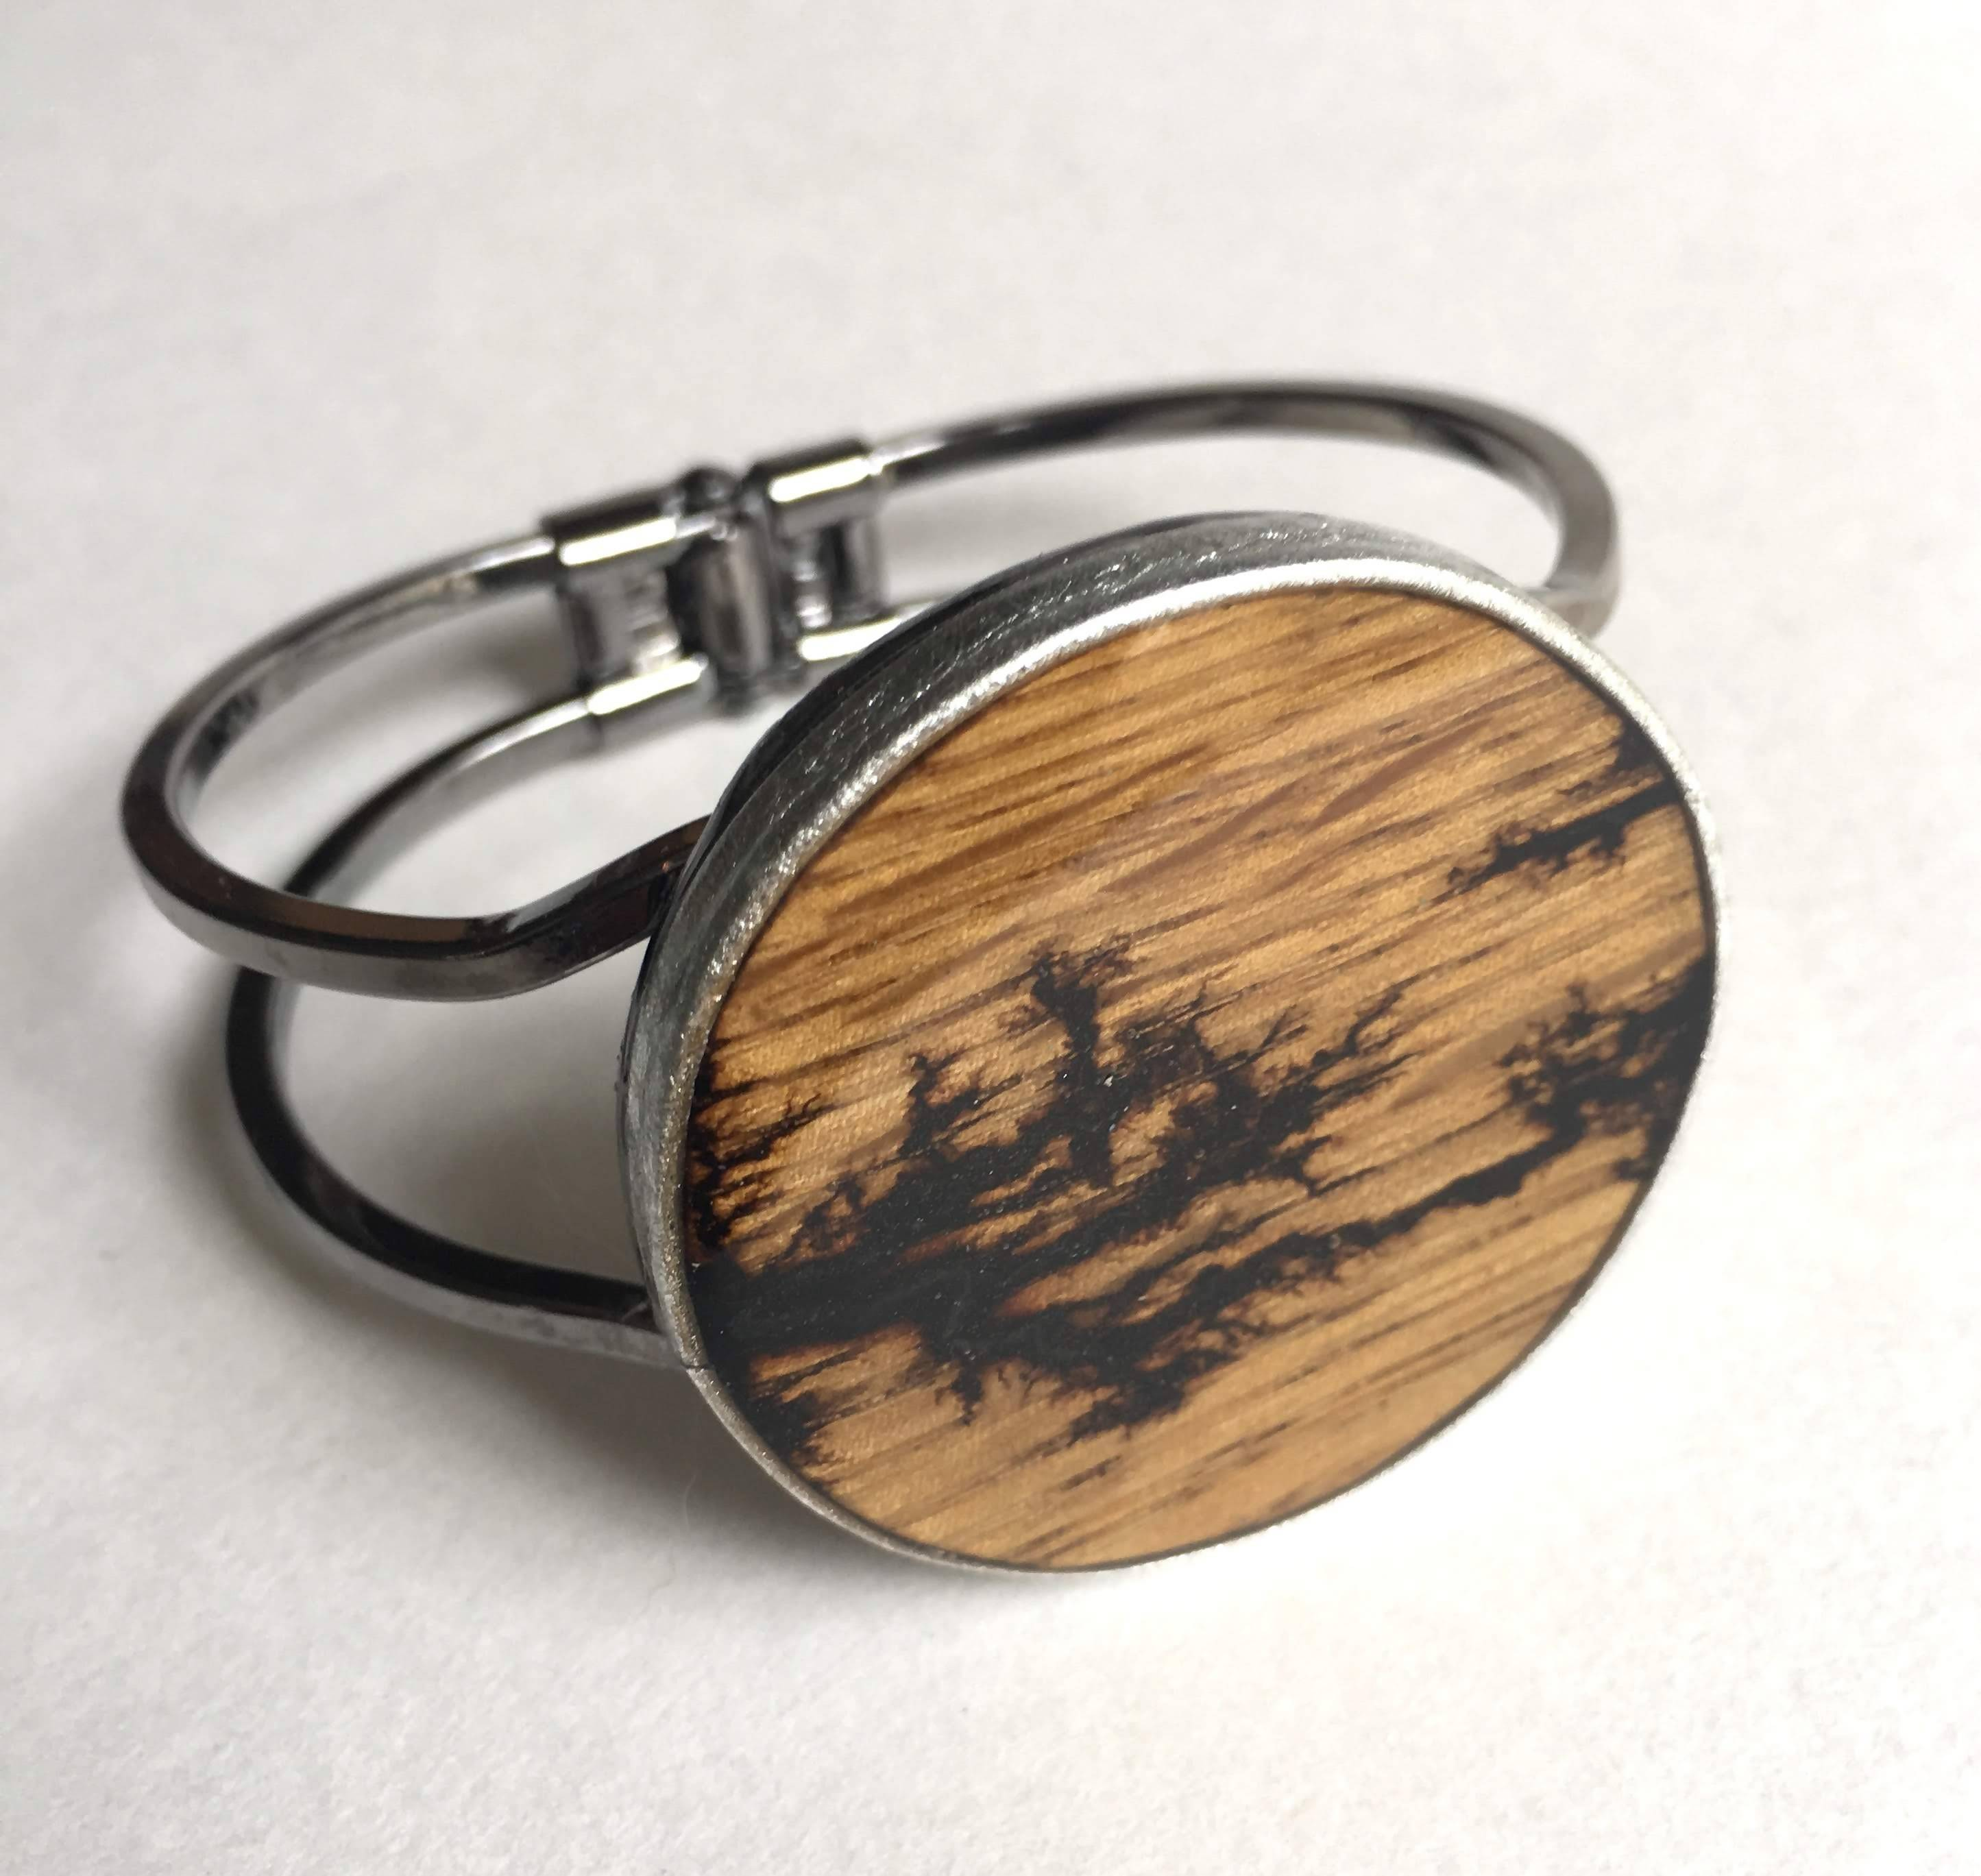 wood burn cuff with silver leather band